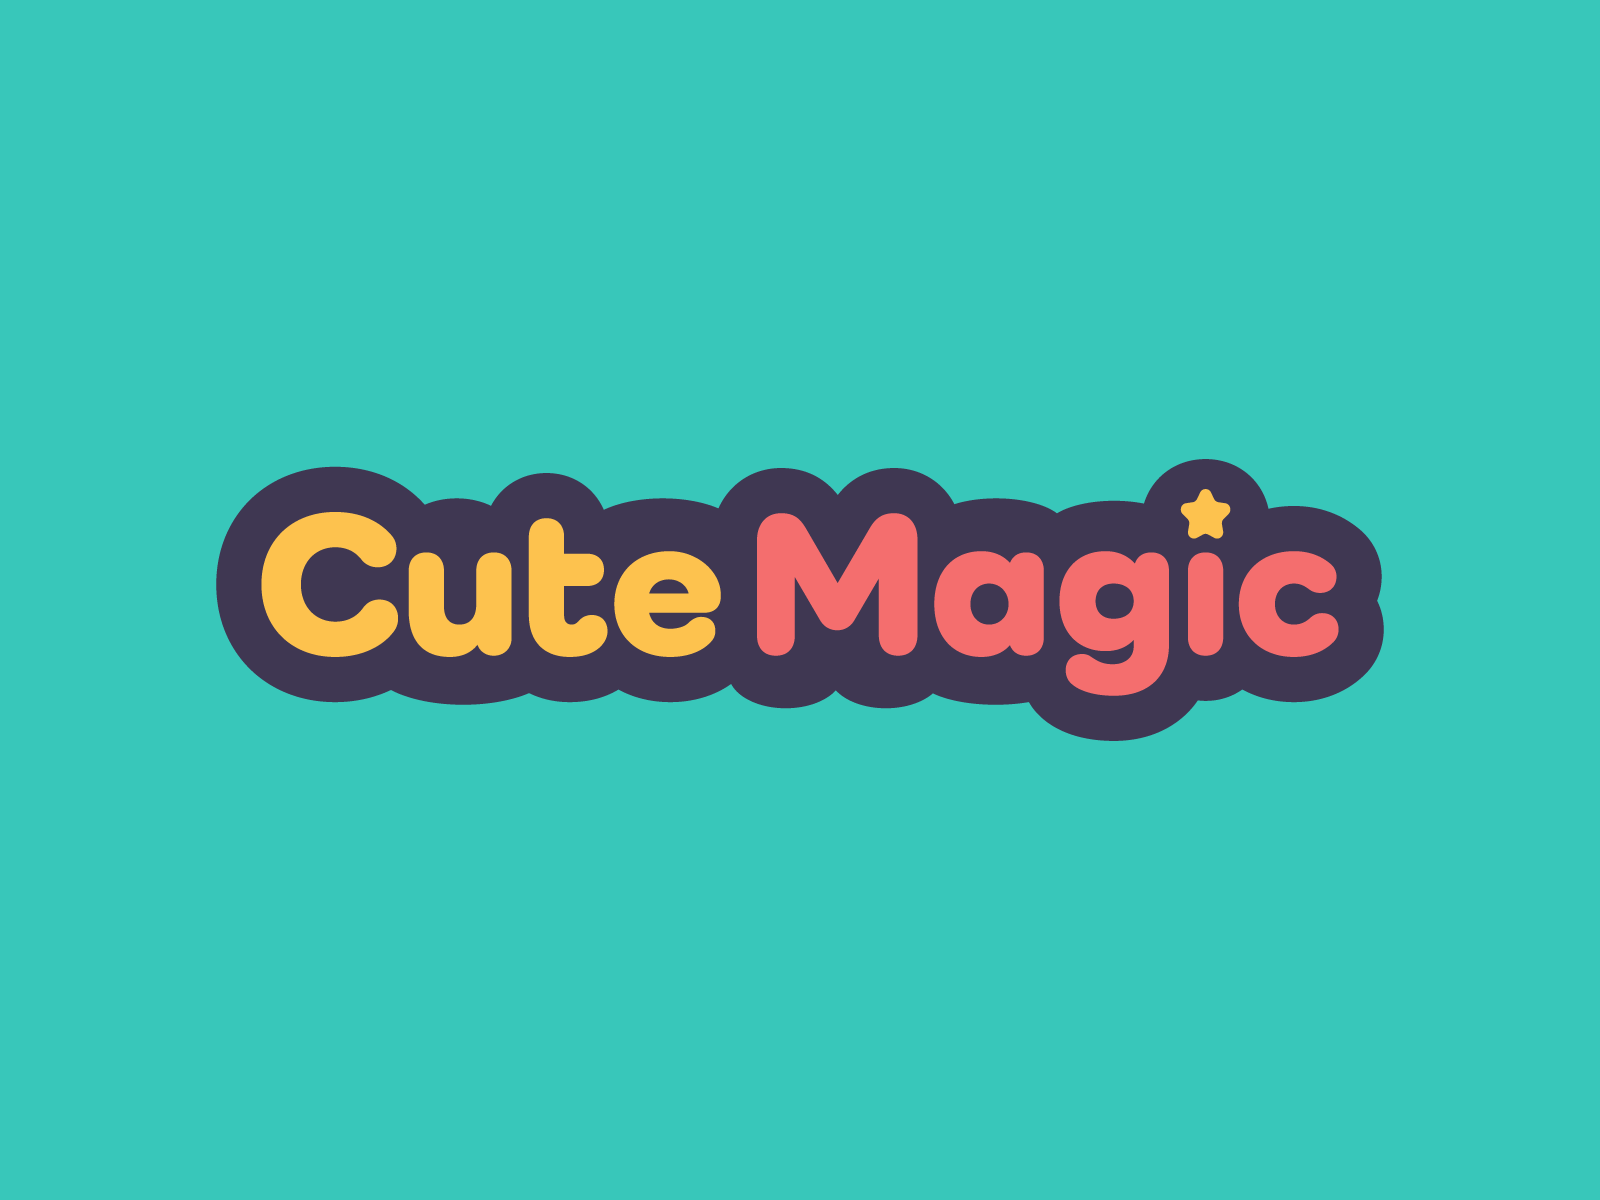 Cute Magic Logo & Website Design